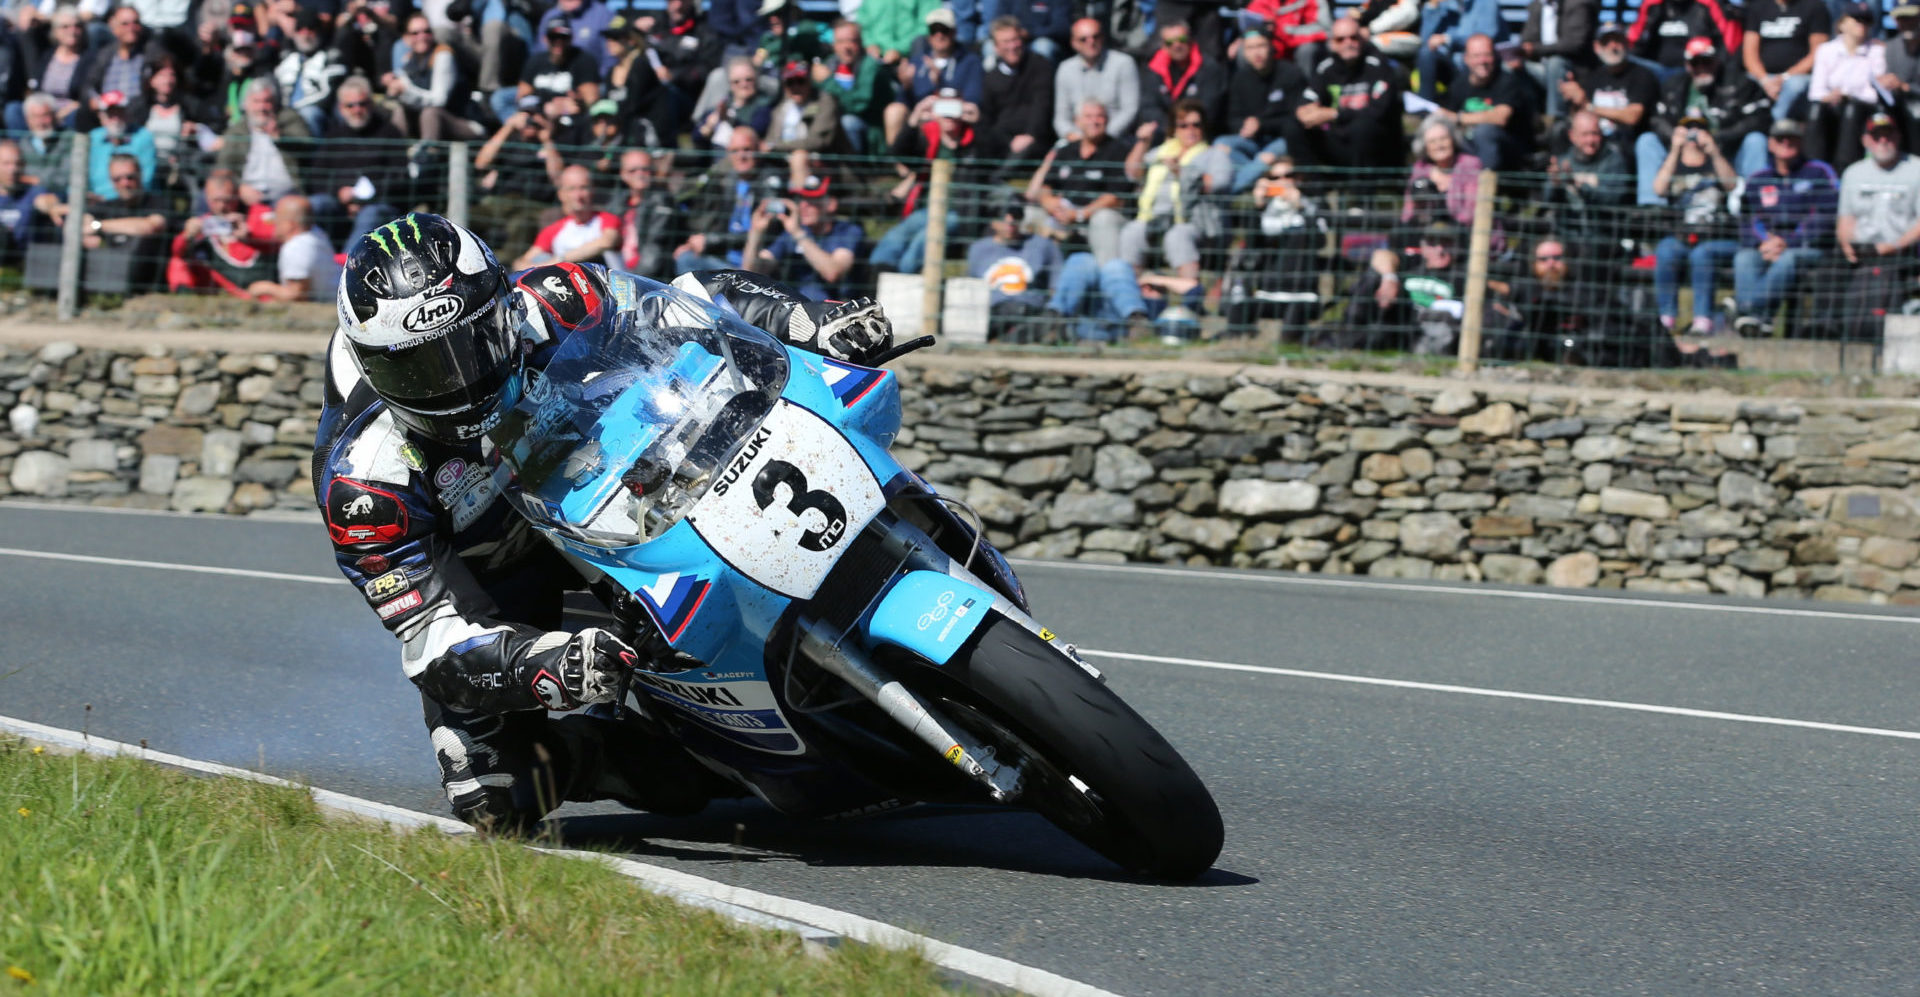 Michael Dunlop (3) in action during the 2016 Classic TT. Photo courtesy of Classic TT Press Office.